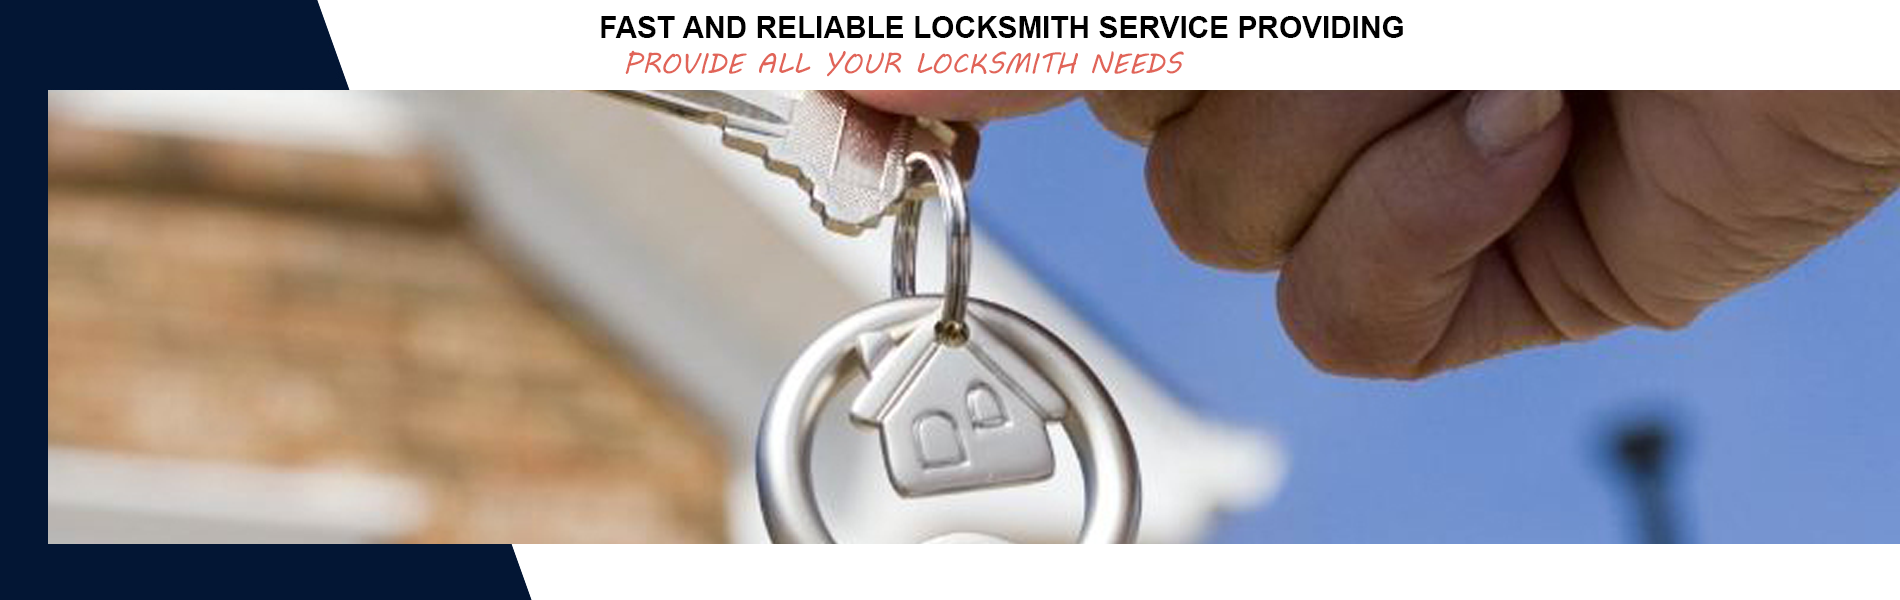 Alleghany West PA Locksmith Store, Alleghany West, PA 215-789-9273